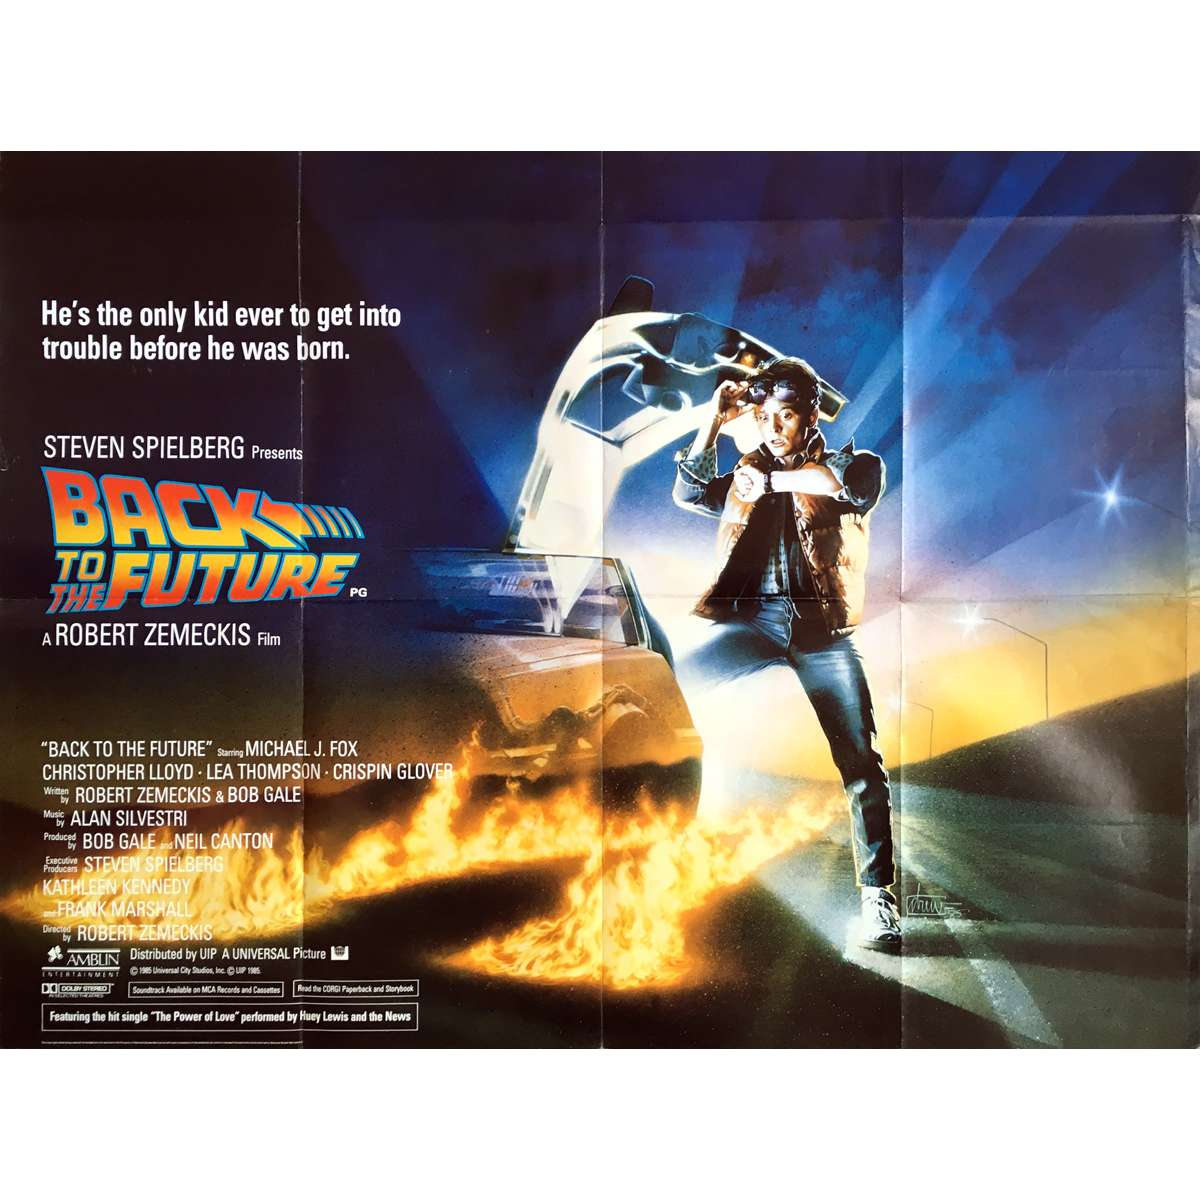 back to the future movie poster 30x40 in